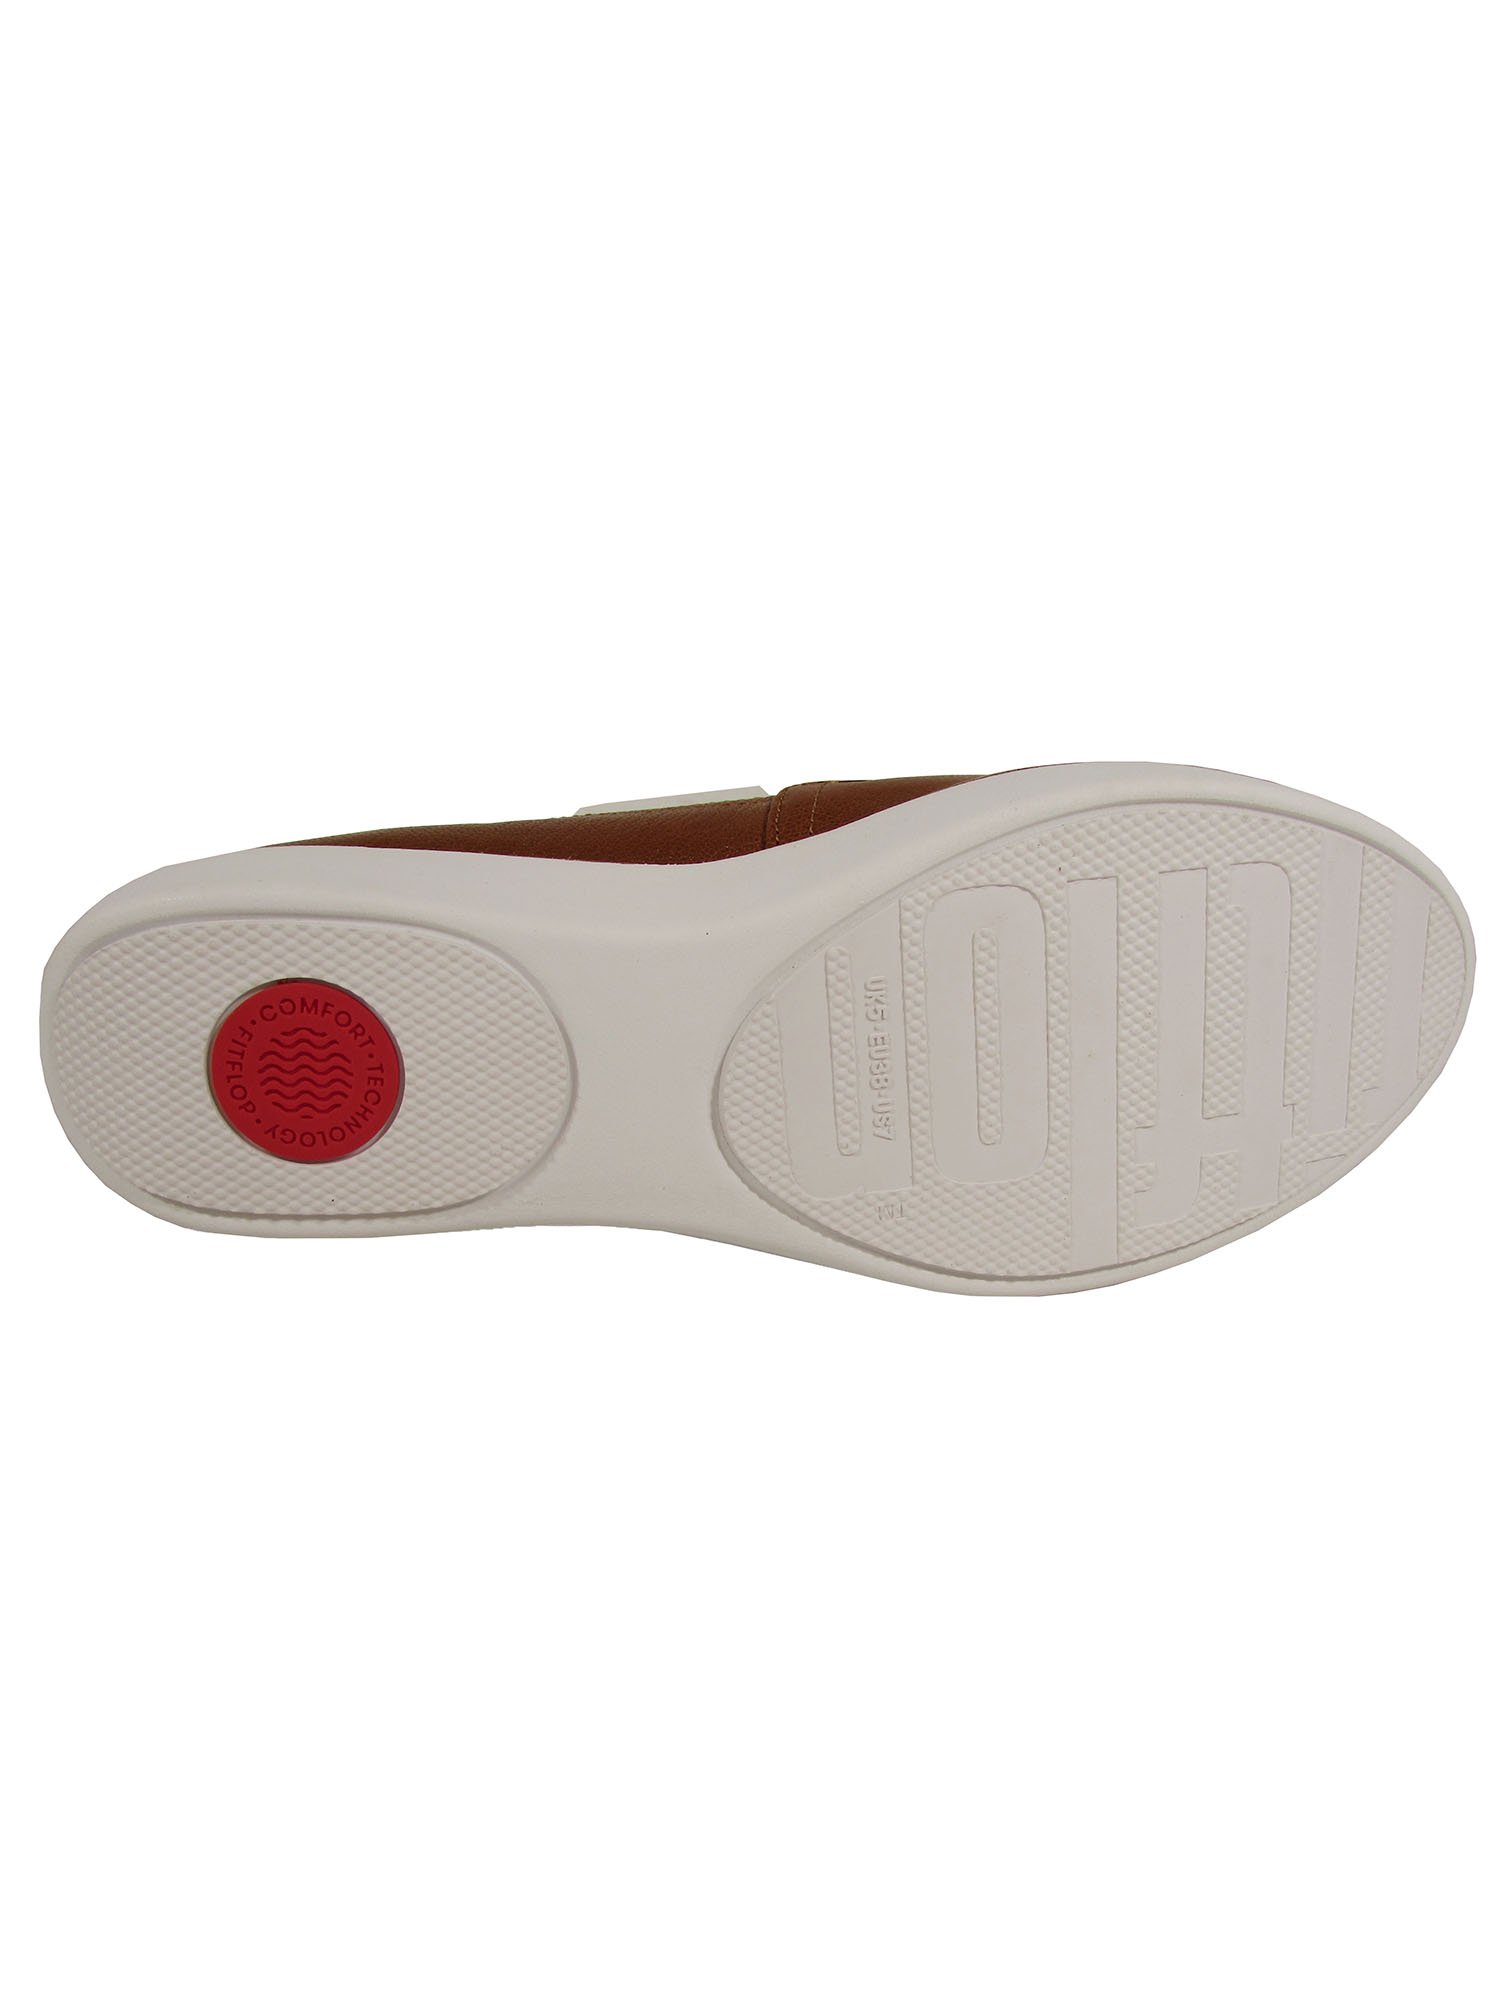 Fitflop-Womens-Casa-Slip-On-Loafer-Shoes thumbnail 9